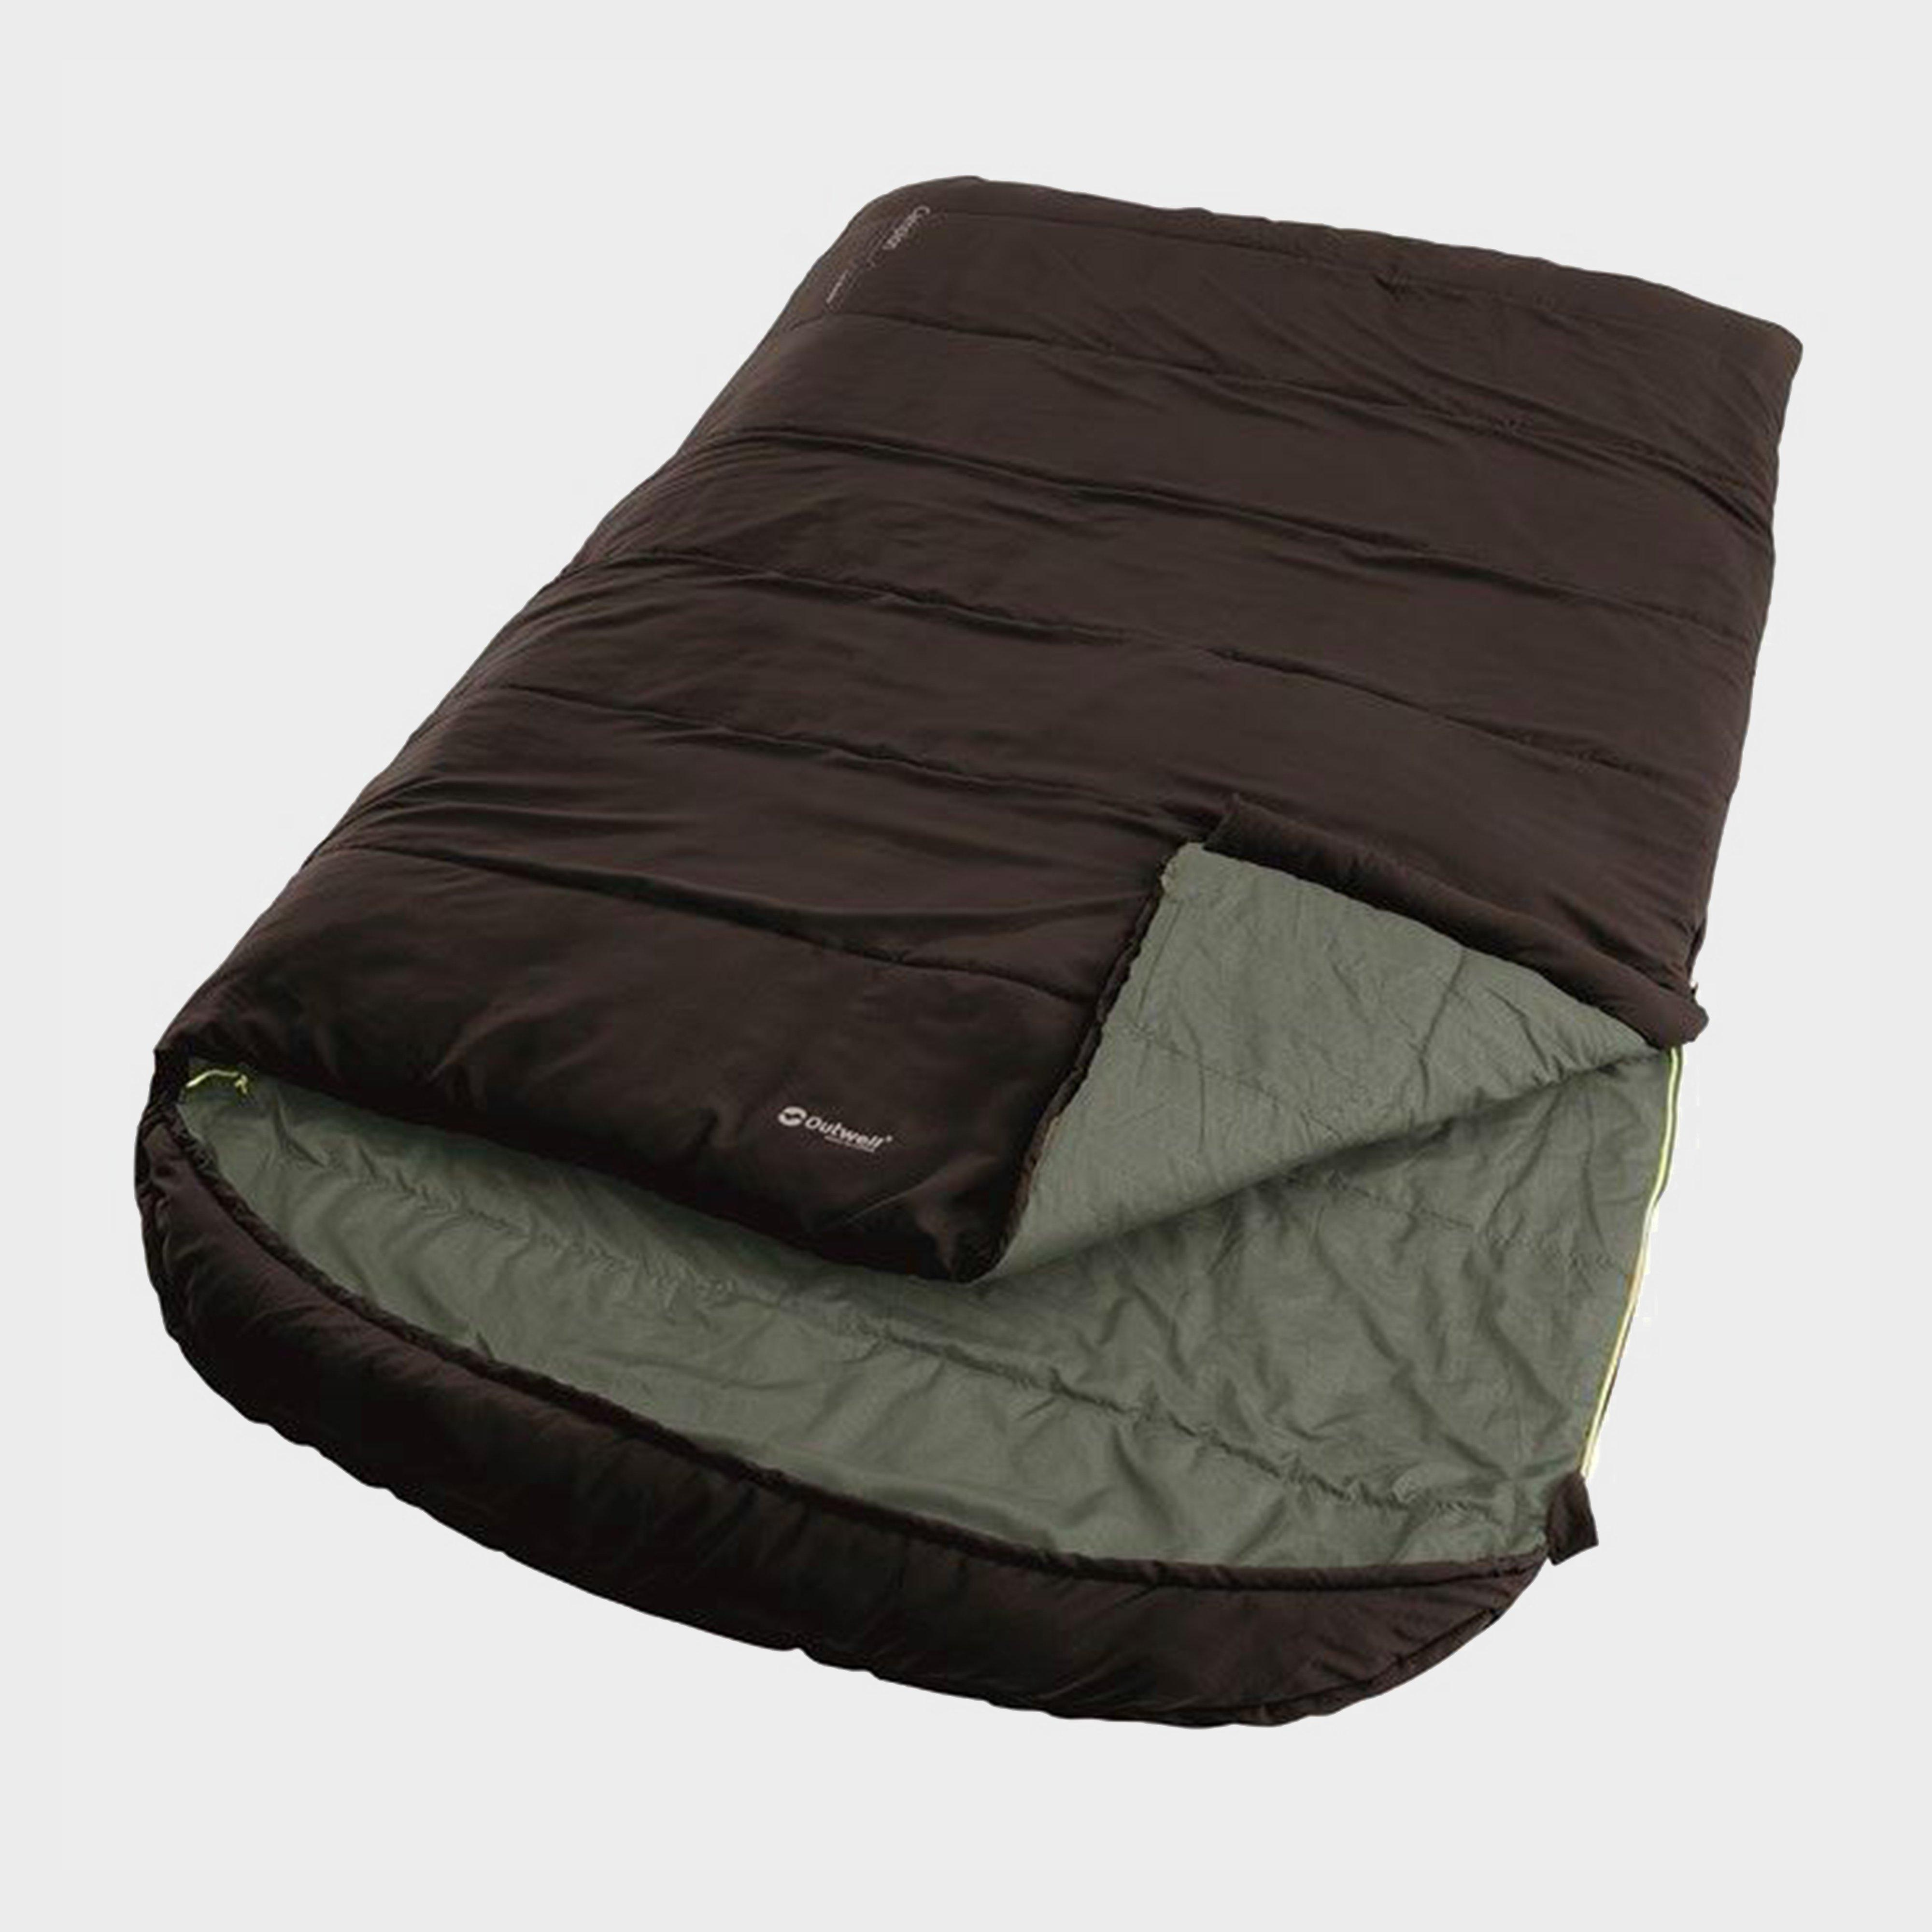 Outwell Outwell Campion Lux Double Sleeping Bag - Brown, Brown